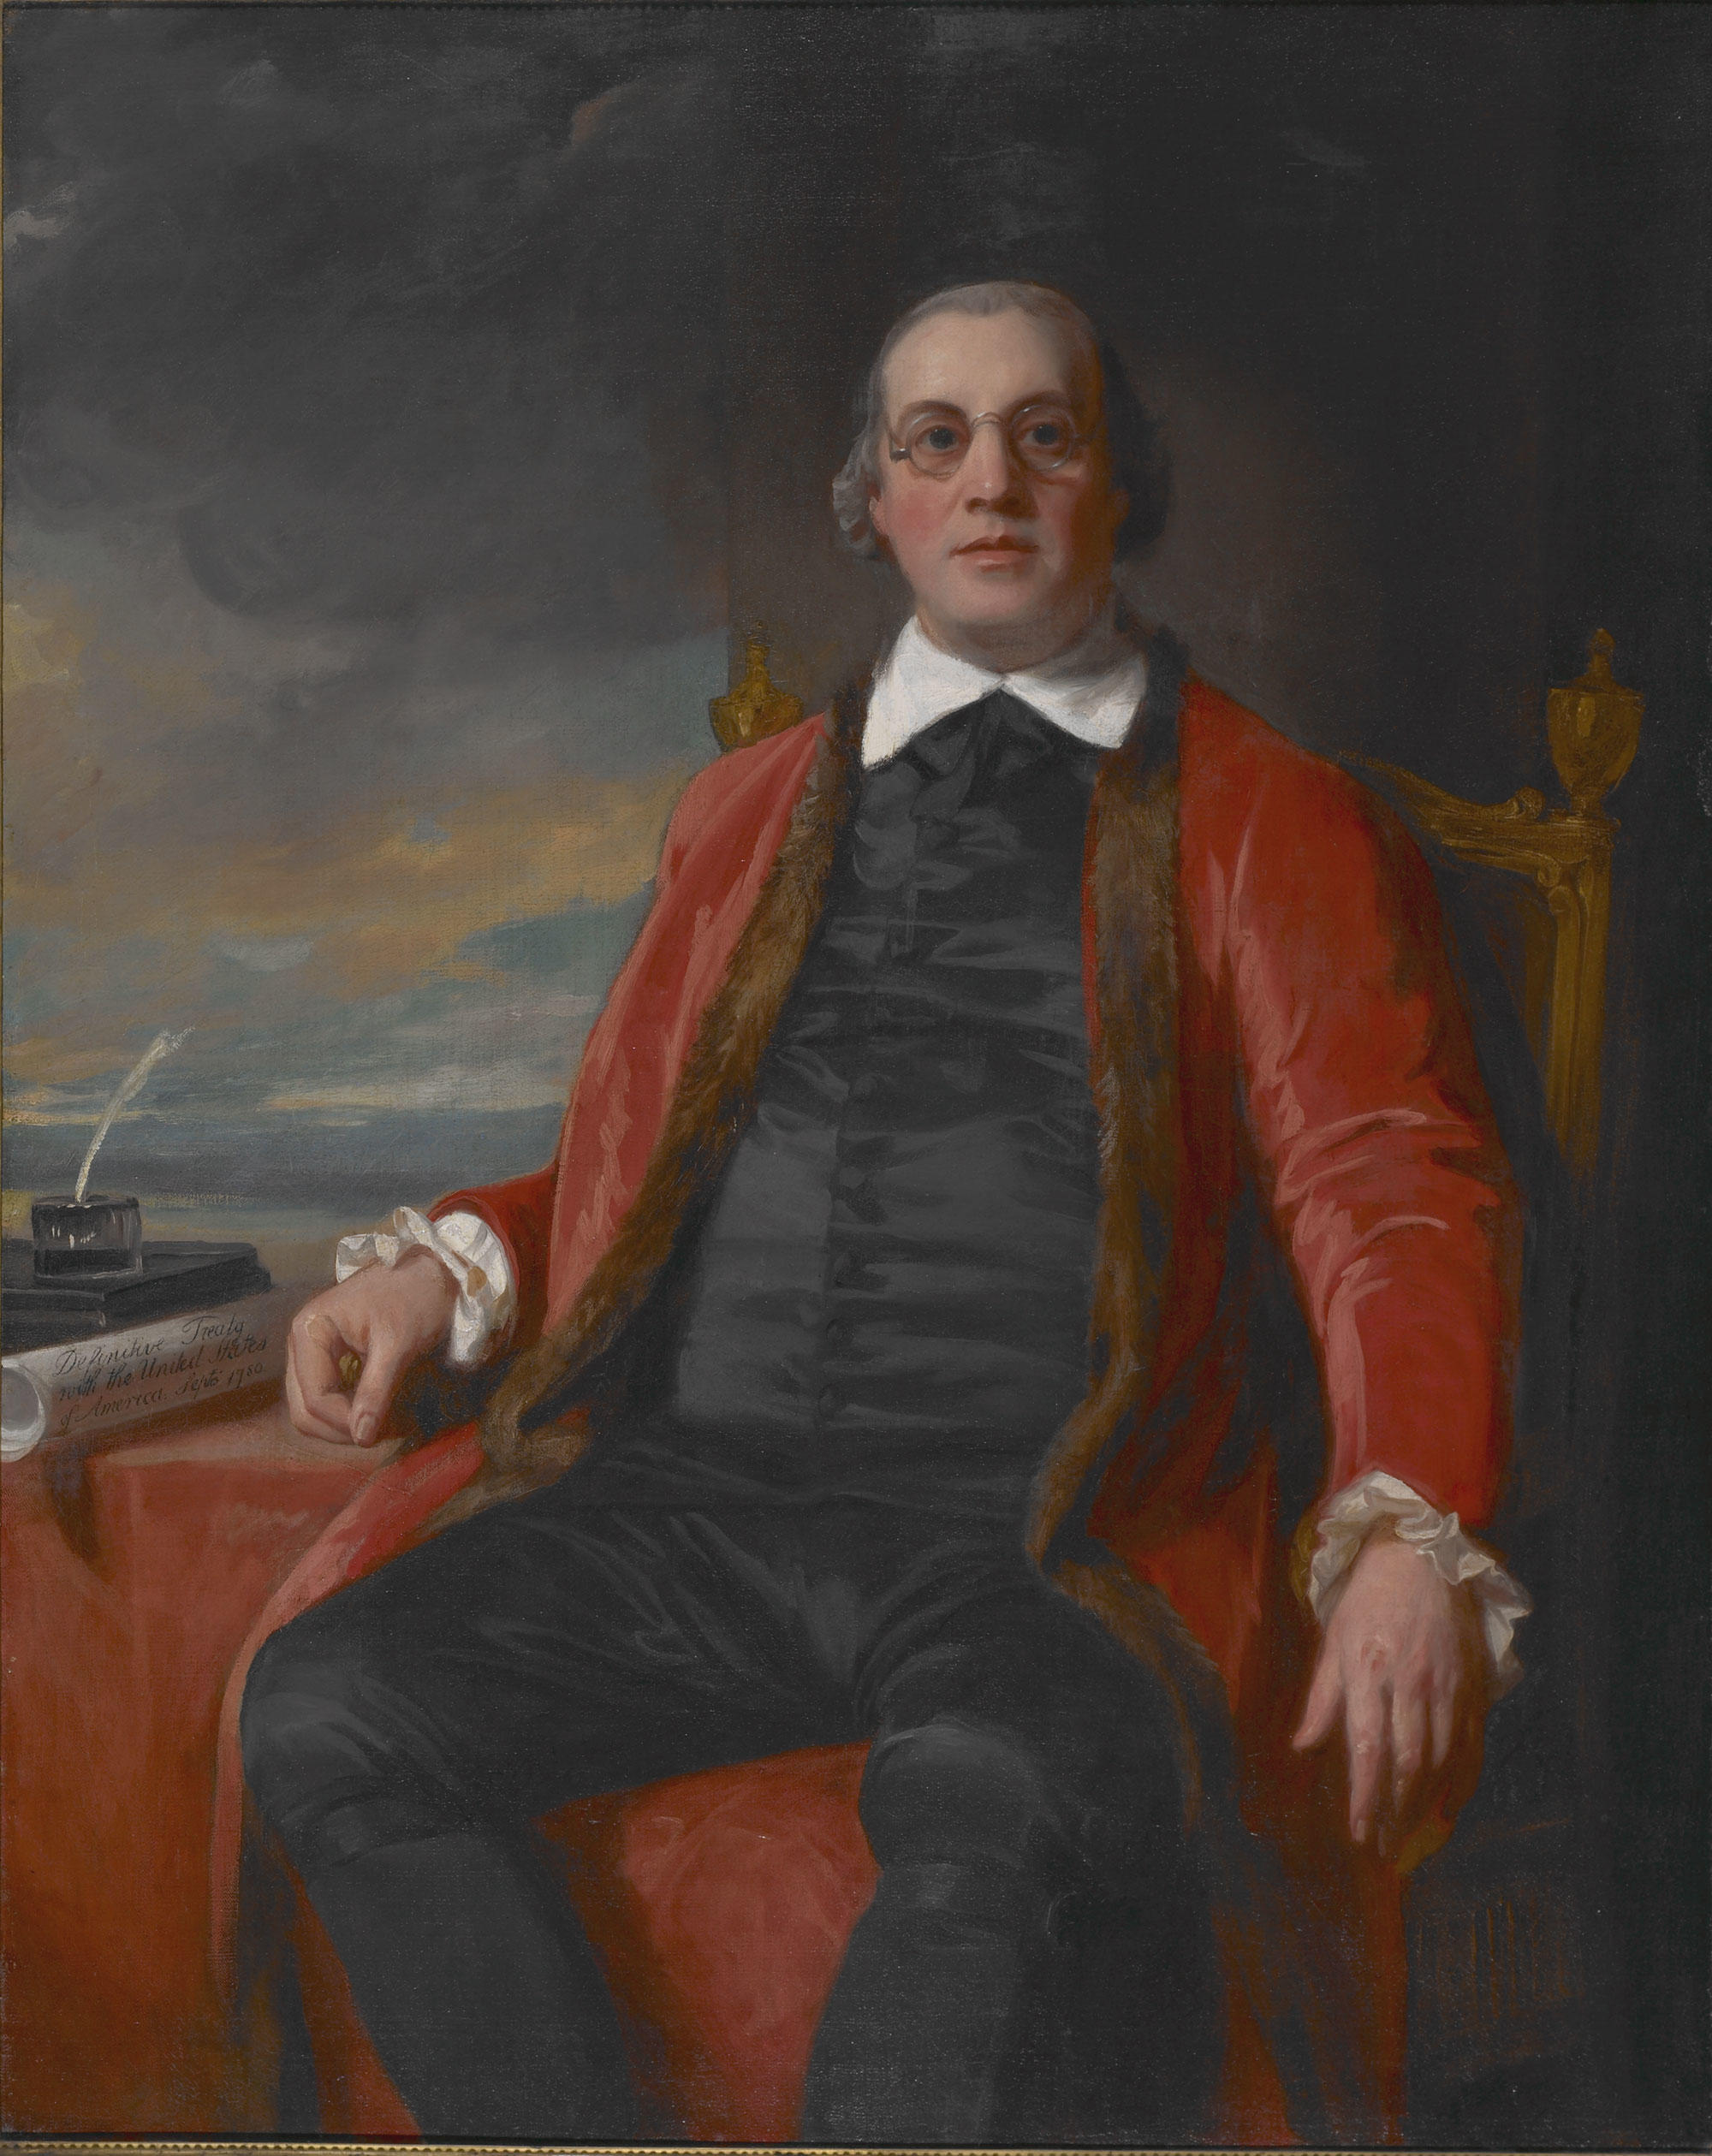 Portrait of David Hartley / George Romney